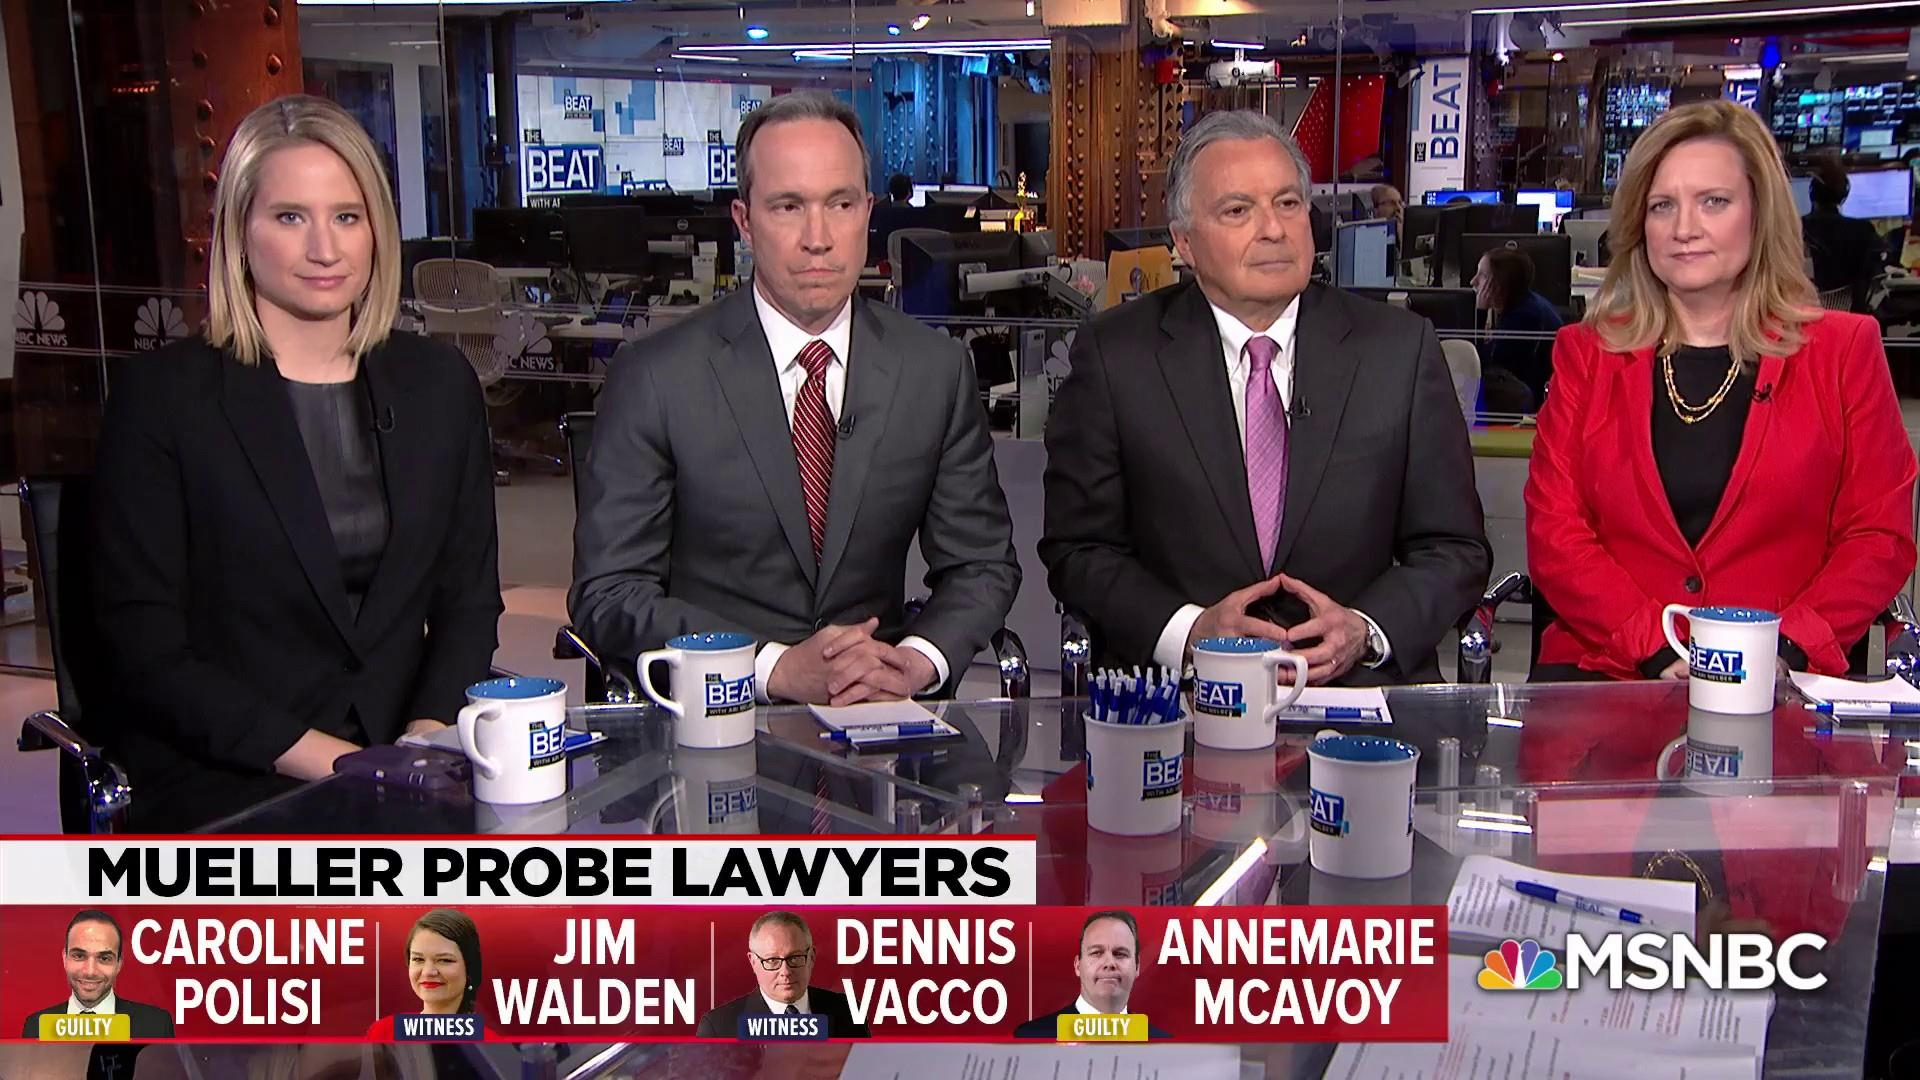 When lawyers for top Mueller witnesses spoke out on live TV